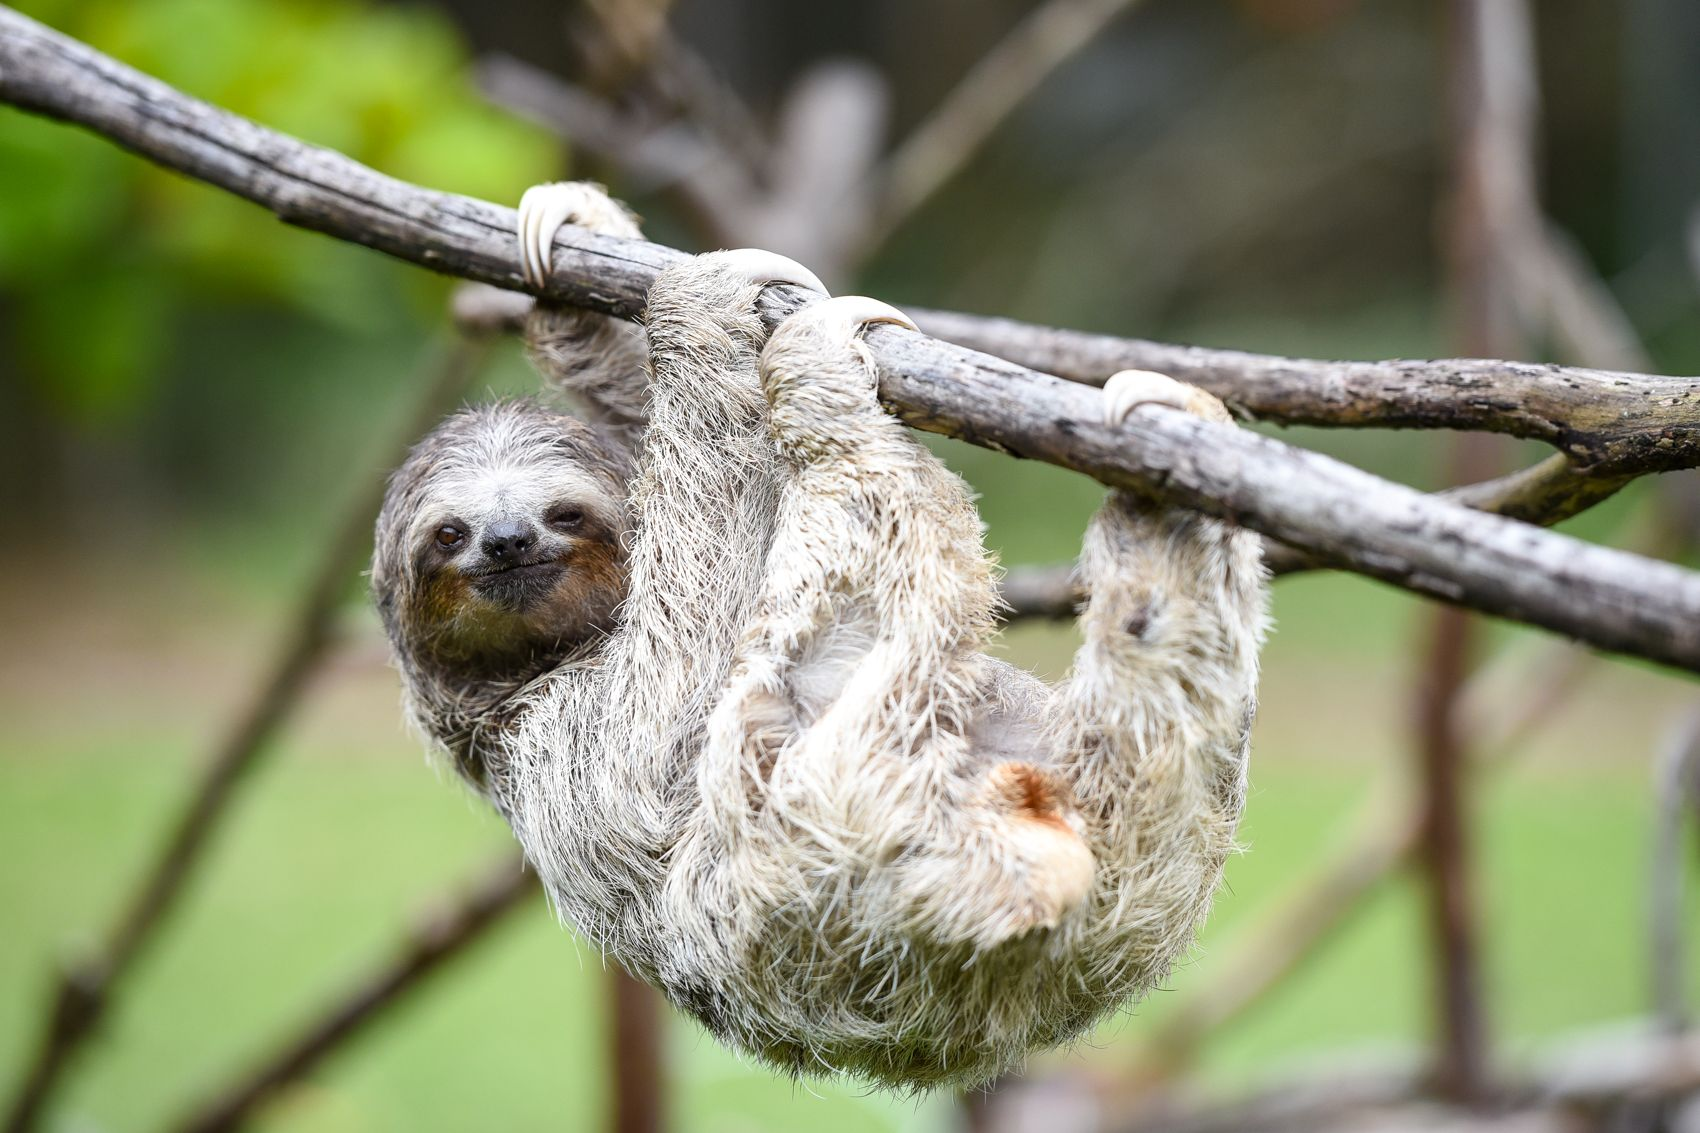 Sloth going to the bathroom - 6 Different Types Of Sloths In The Rainforest With Pictures And Facts